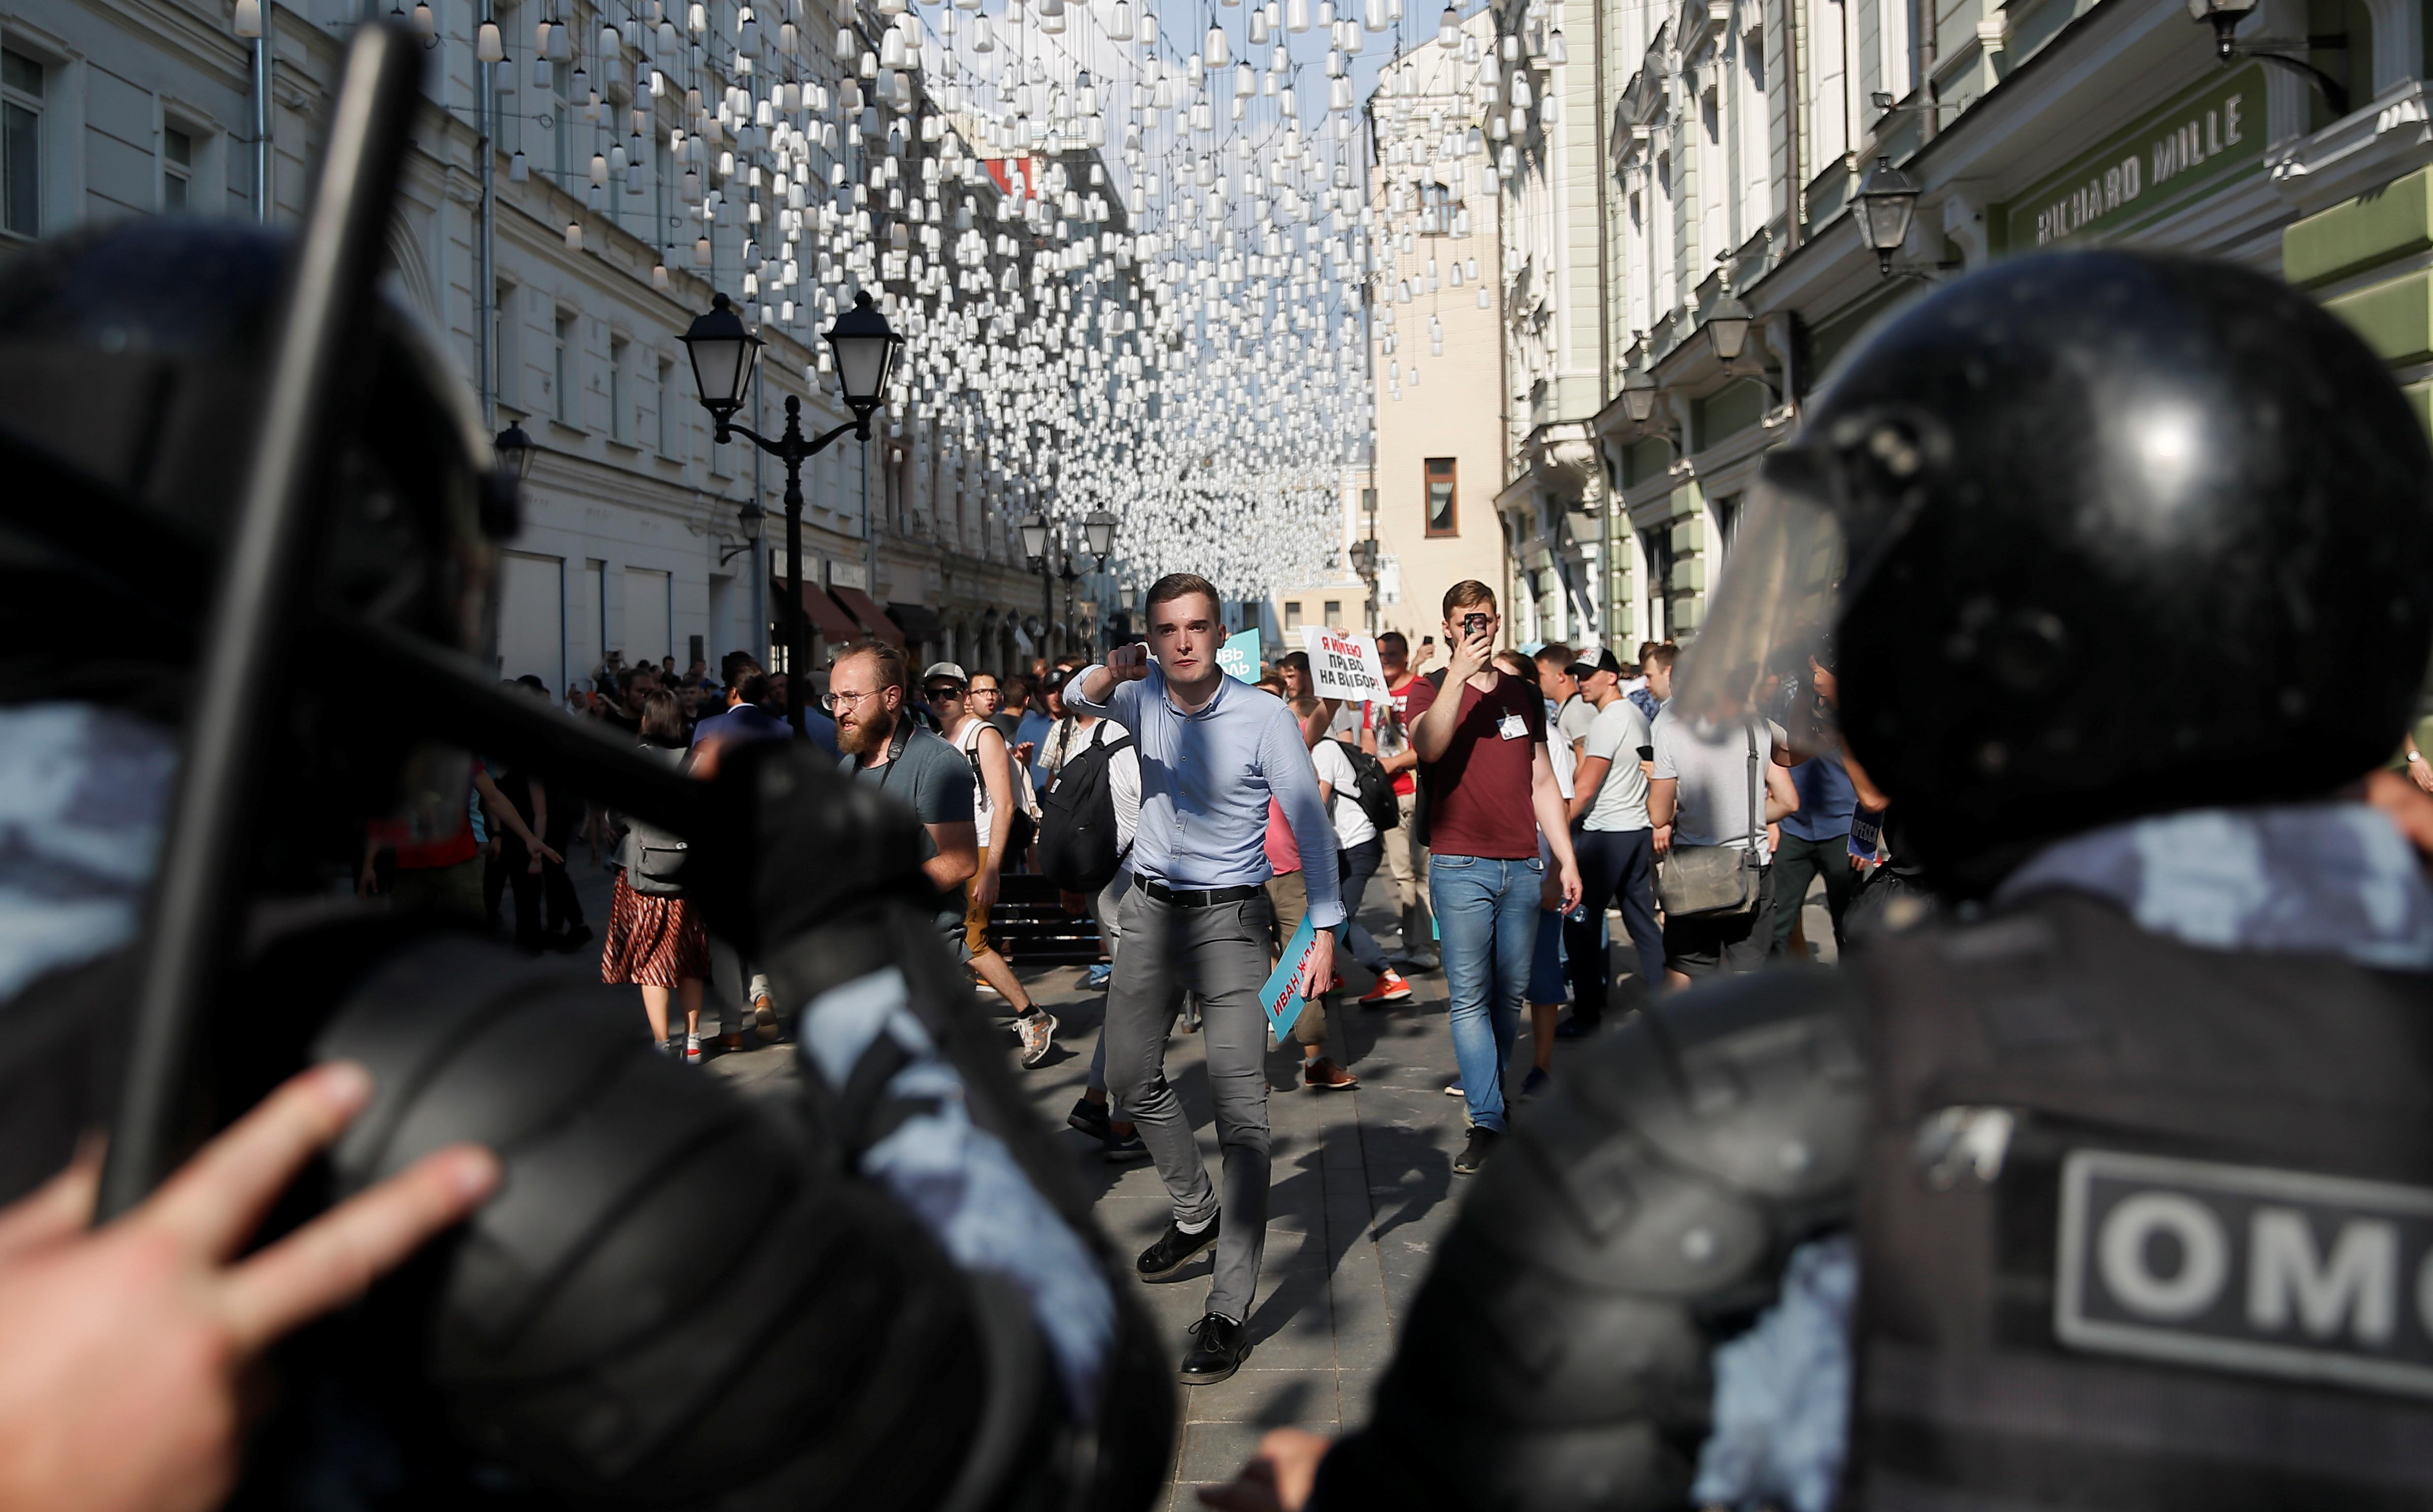 Russia detains more than 1,000 people in opposition crackdown